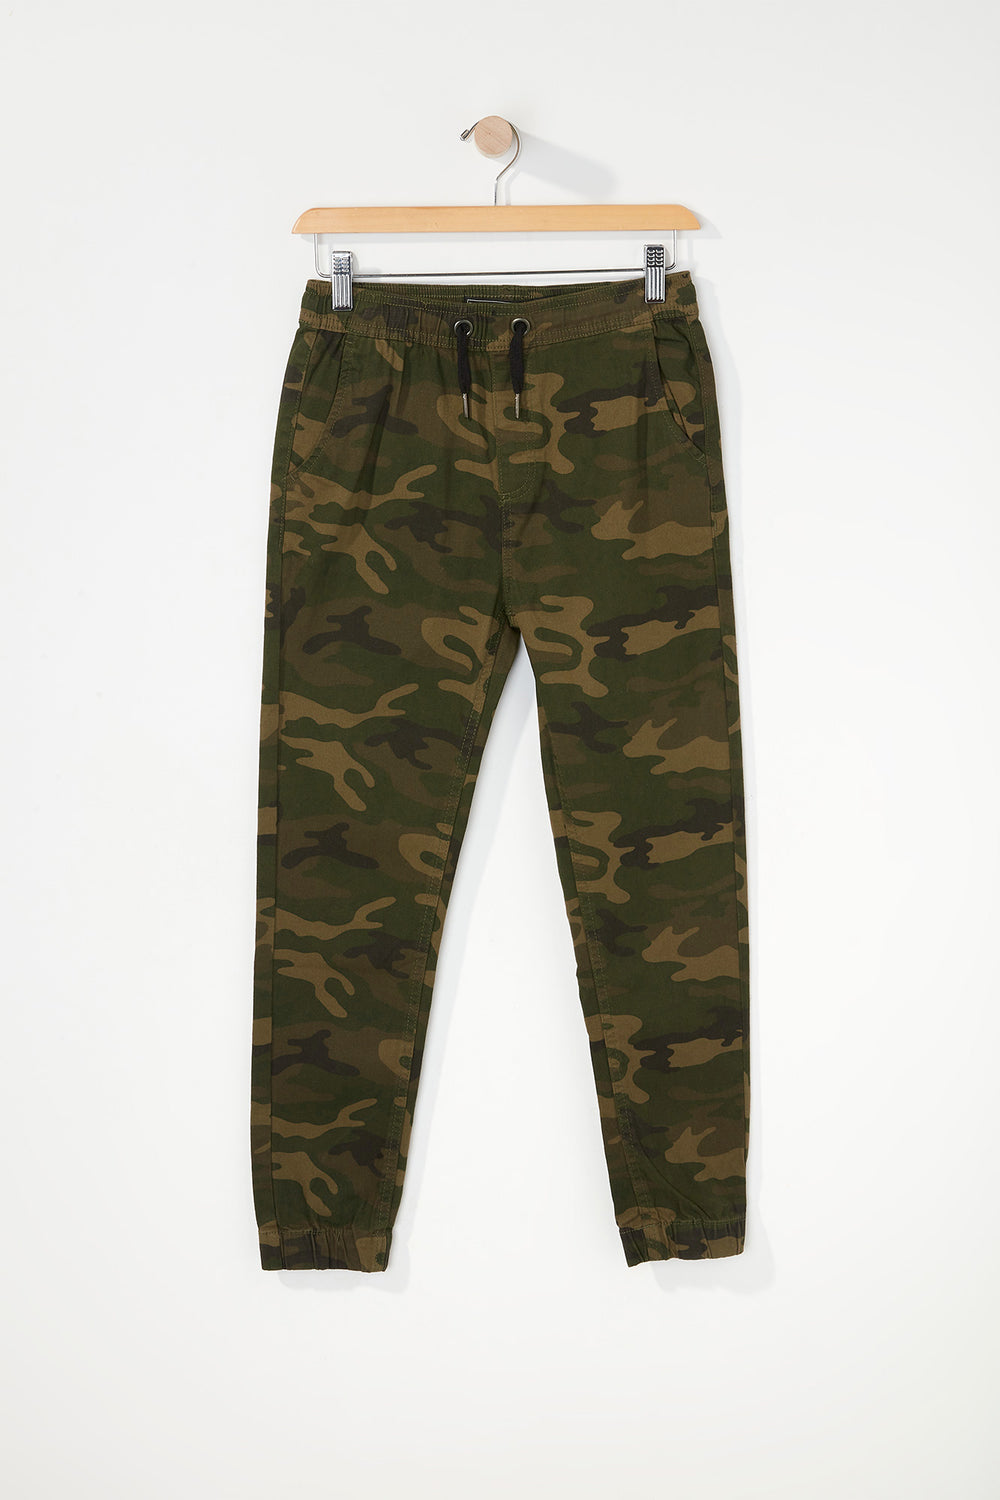 West49 Boys Camo Jogger Camouflage